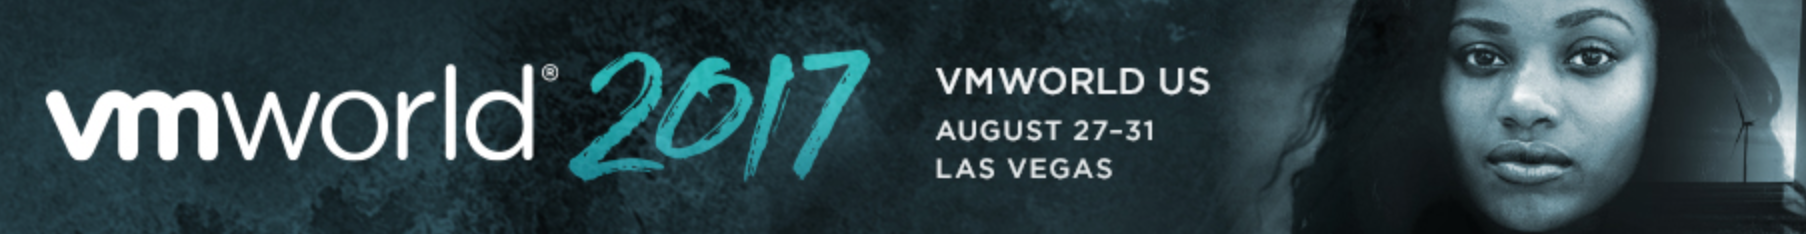 VMworld 2017 Las Vegas – Key takeaways, where to eat, what to see and how to go about